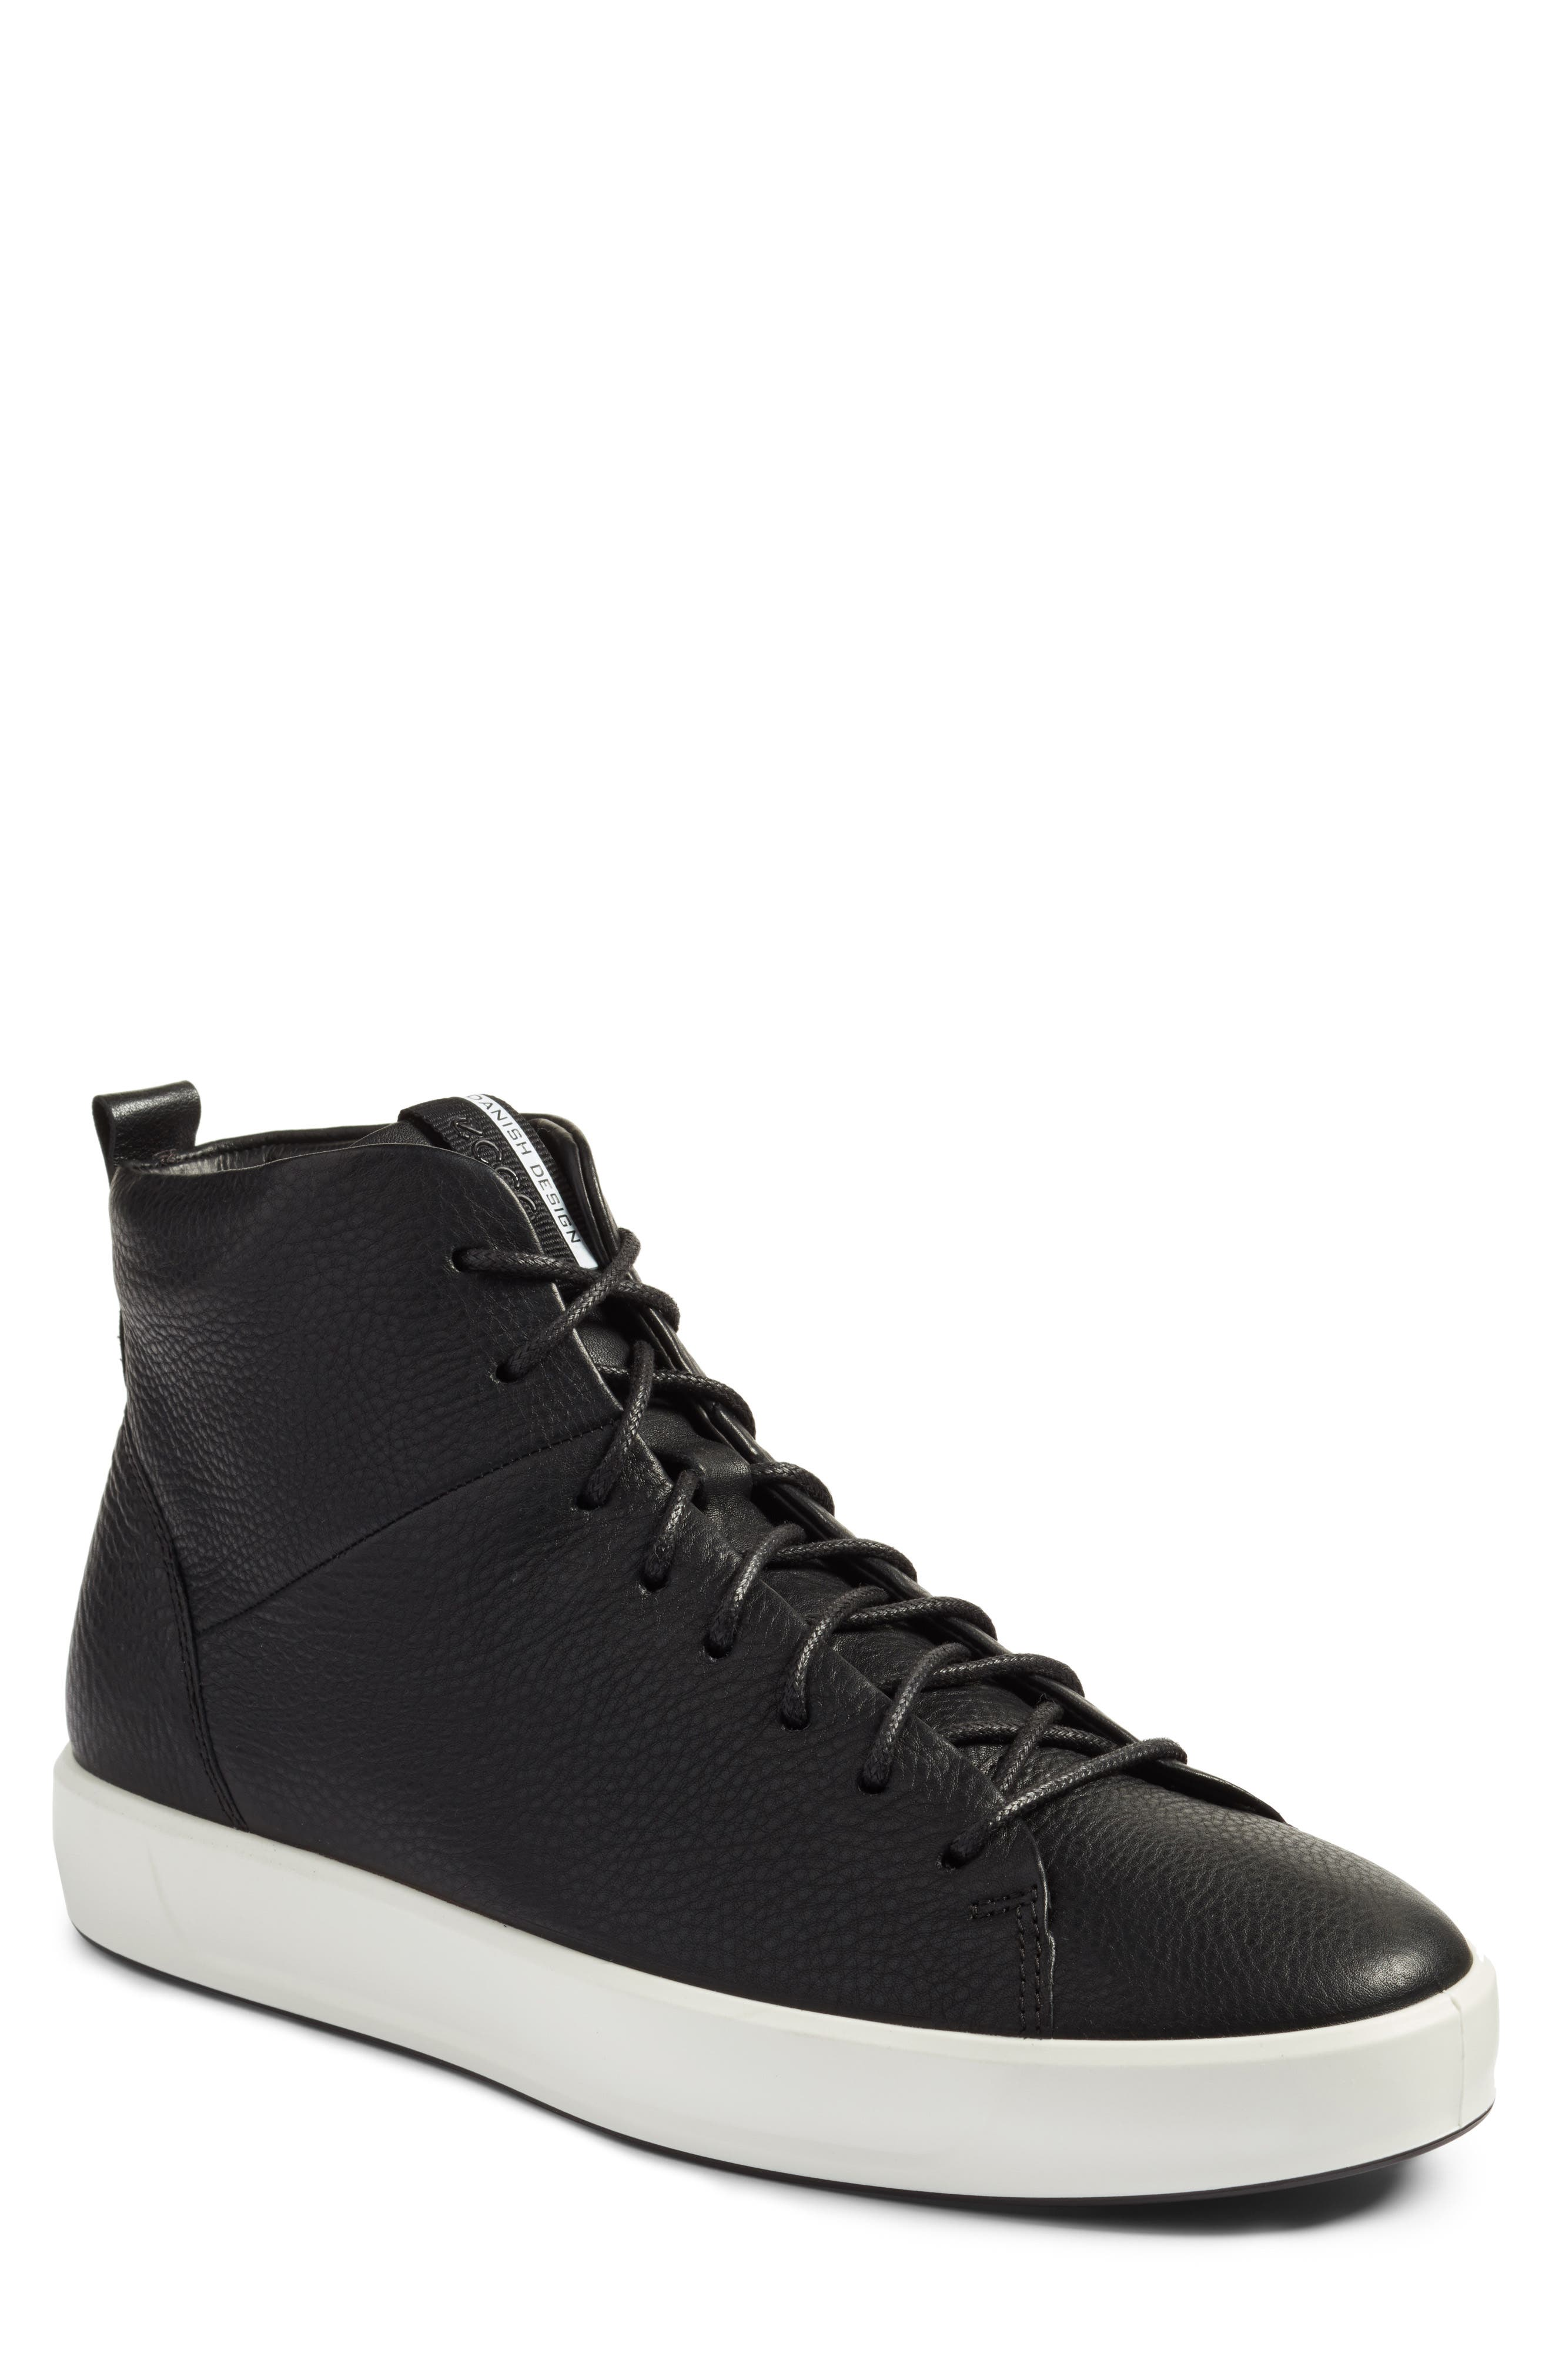 Soft 8 Sneaker,                         Main,                         color, New Black